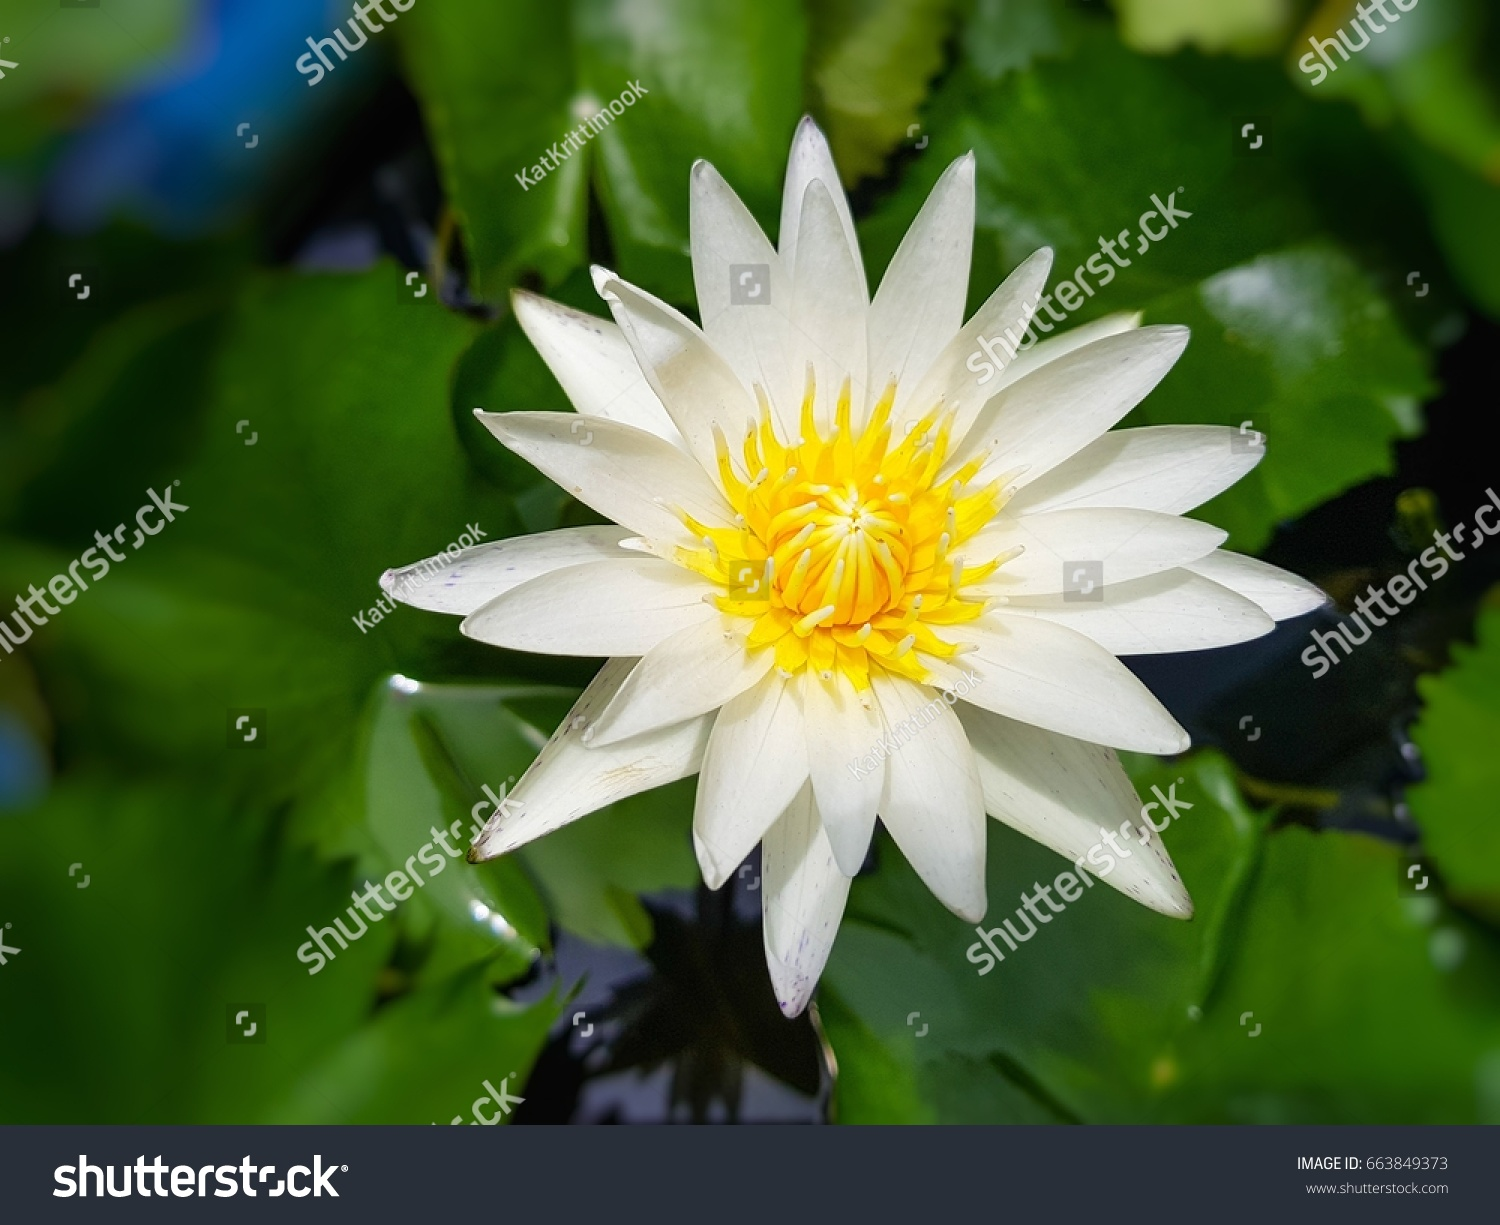 White lotus flower meaning image collections flower wallpaper hd white lotus flower meaning choice image flower wallpaper hd old fashioned white lotus flower meaning frieze izmirmasajfo